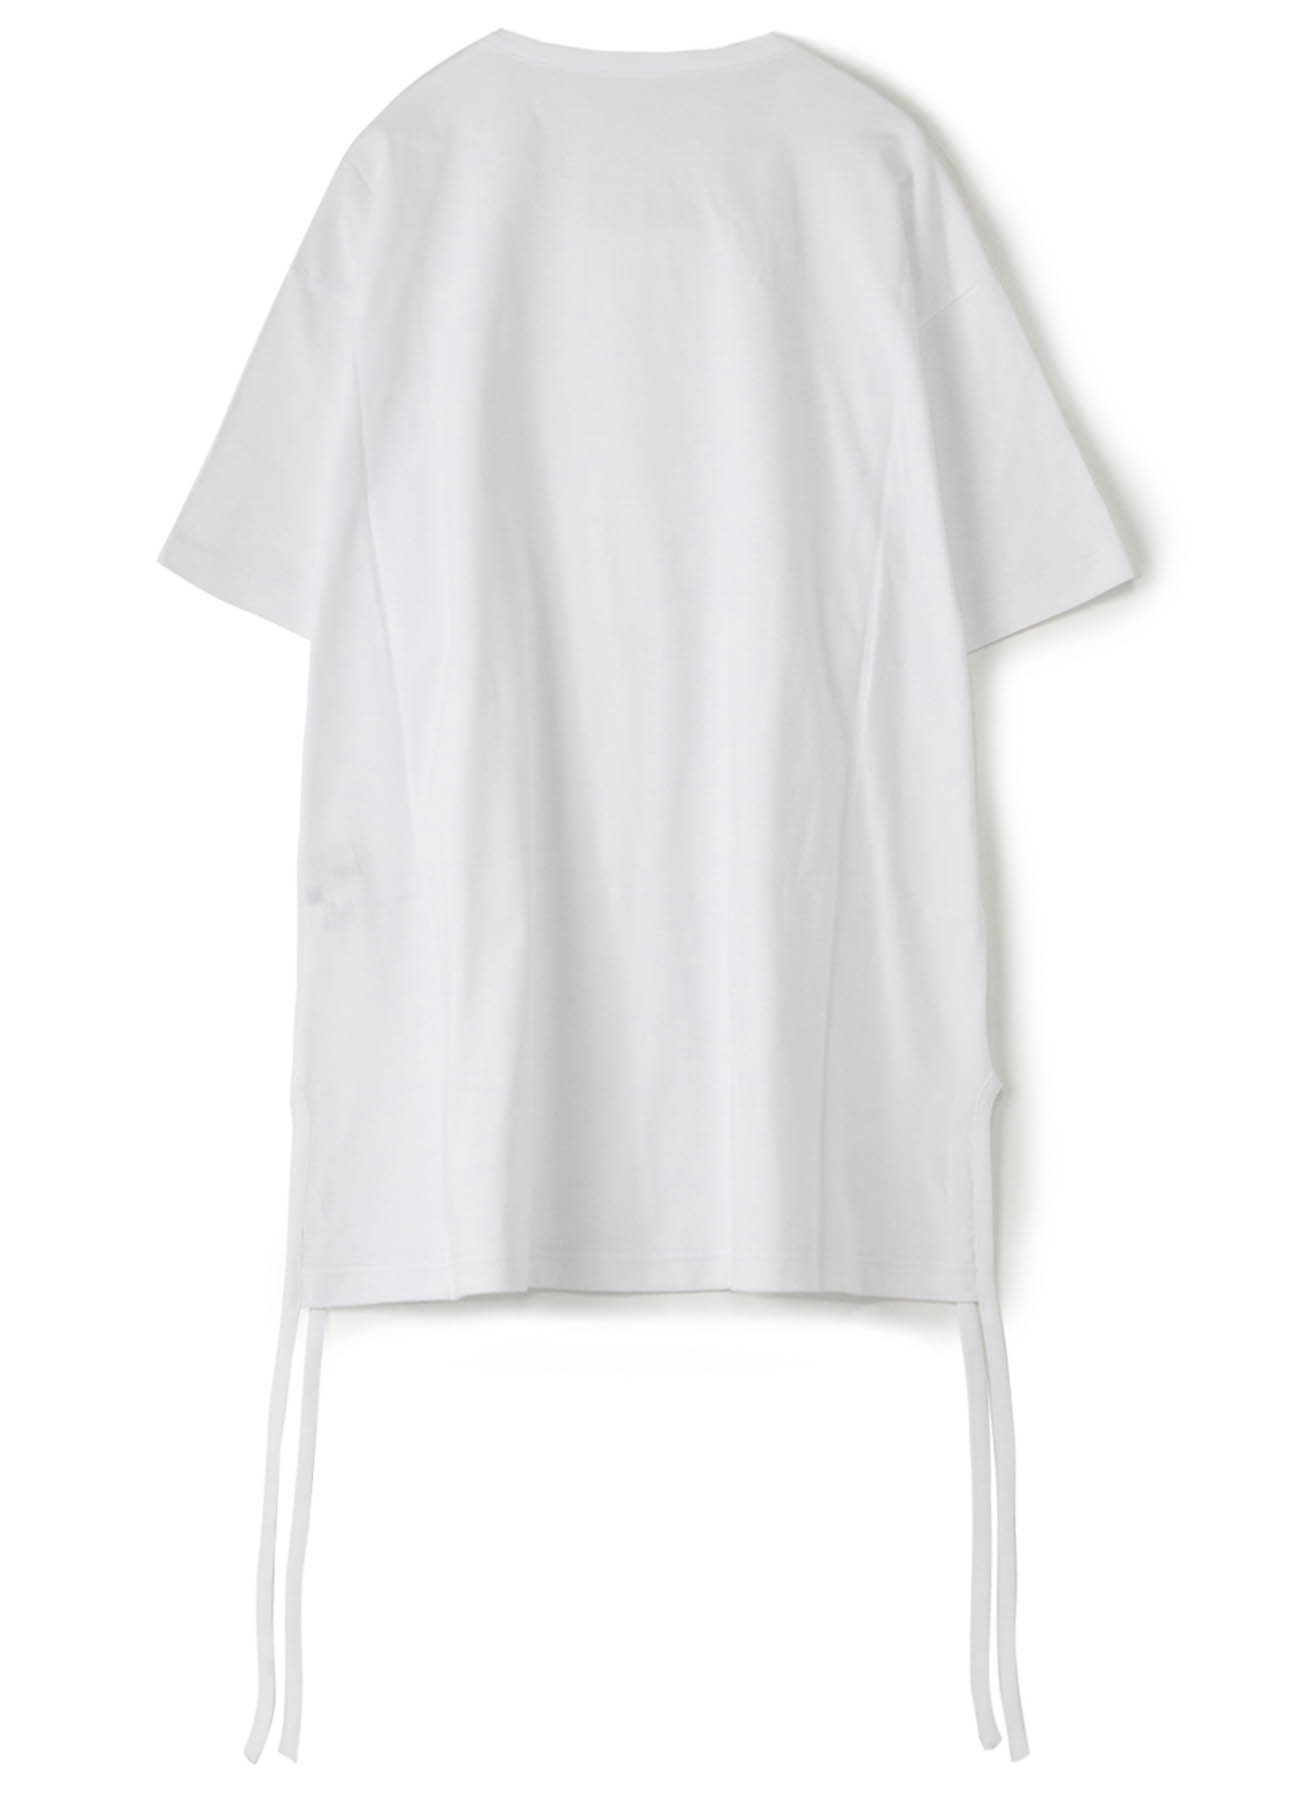 Cotton Jersey Piping T Short Sleeves